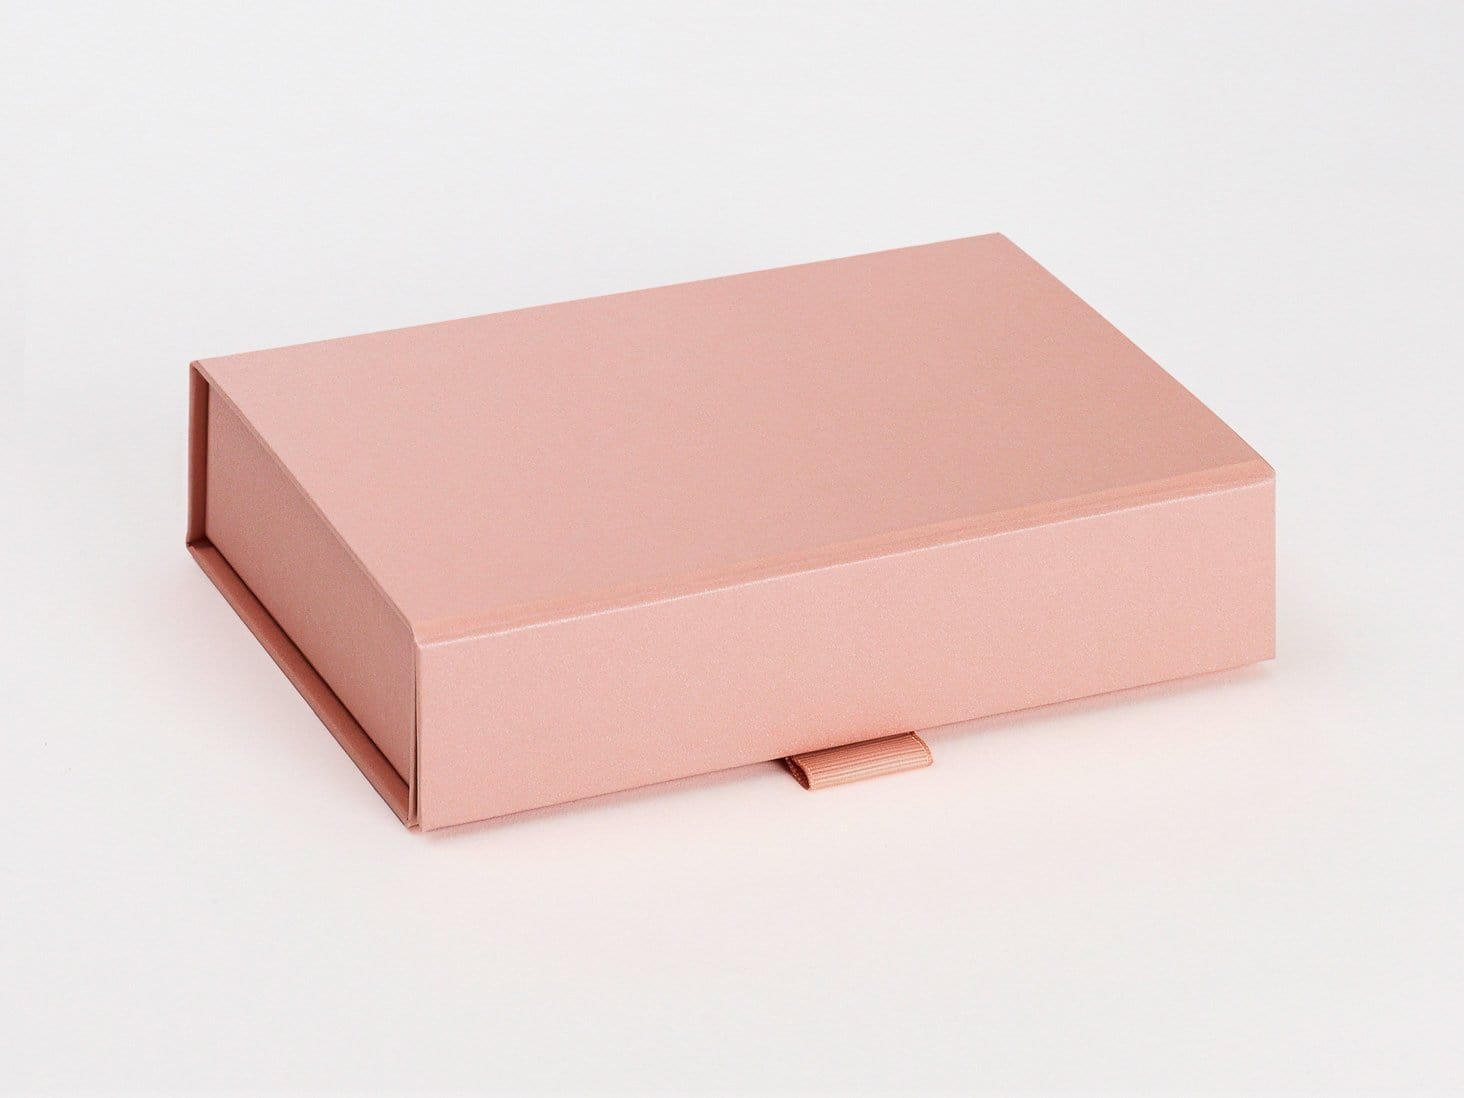 Rose Gold A6 Shallow Gift Box Sample  Assembled